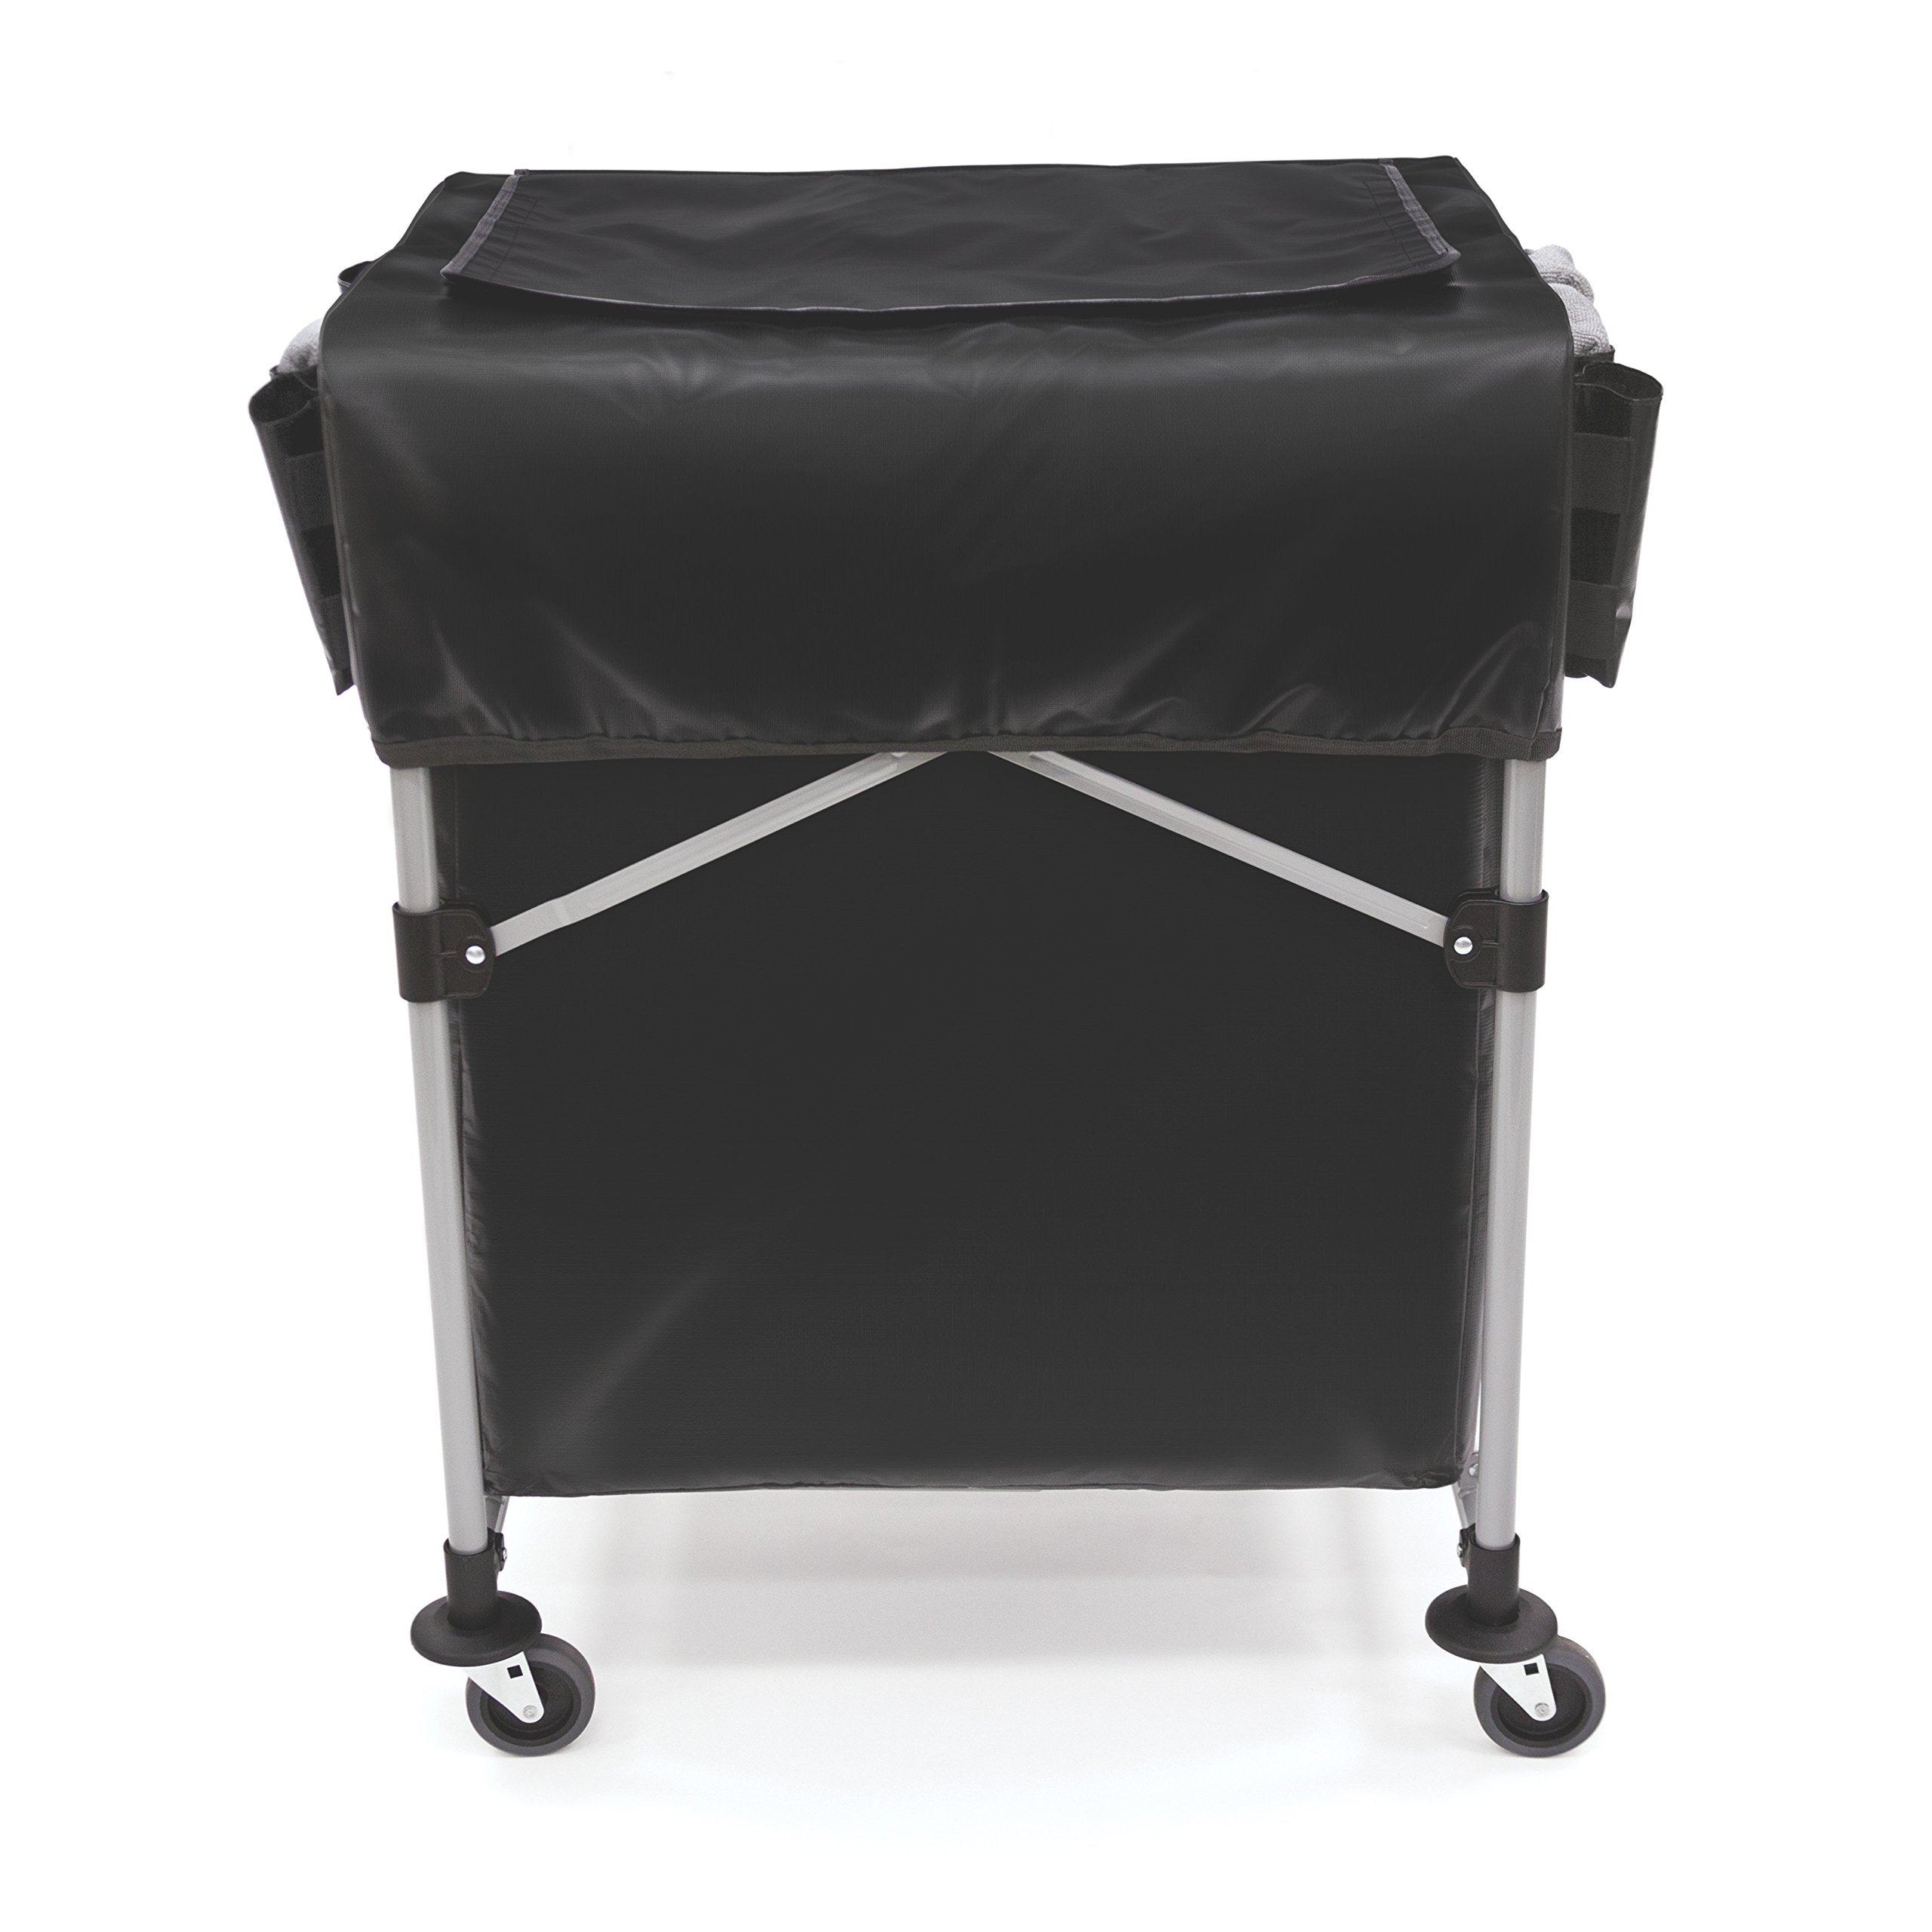 Rubbermaid Commercial Products 1889863 Cover for Collapsible x-CART, Small by Rubbermaid Commercial Products